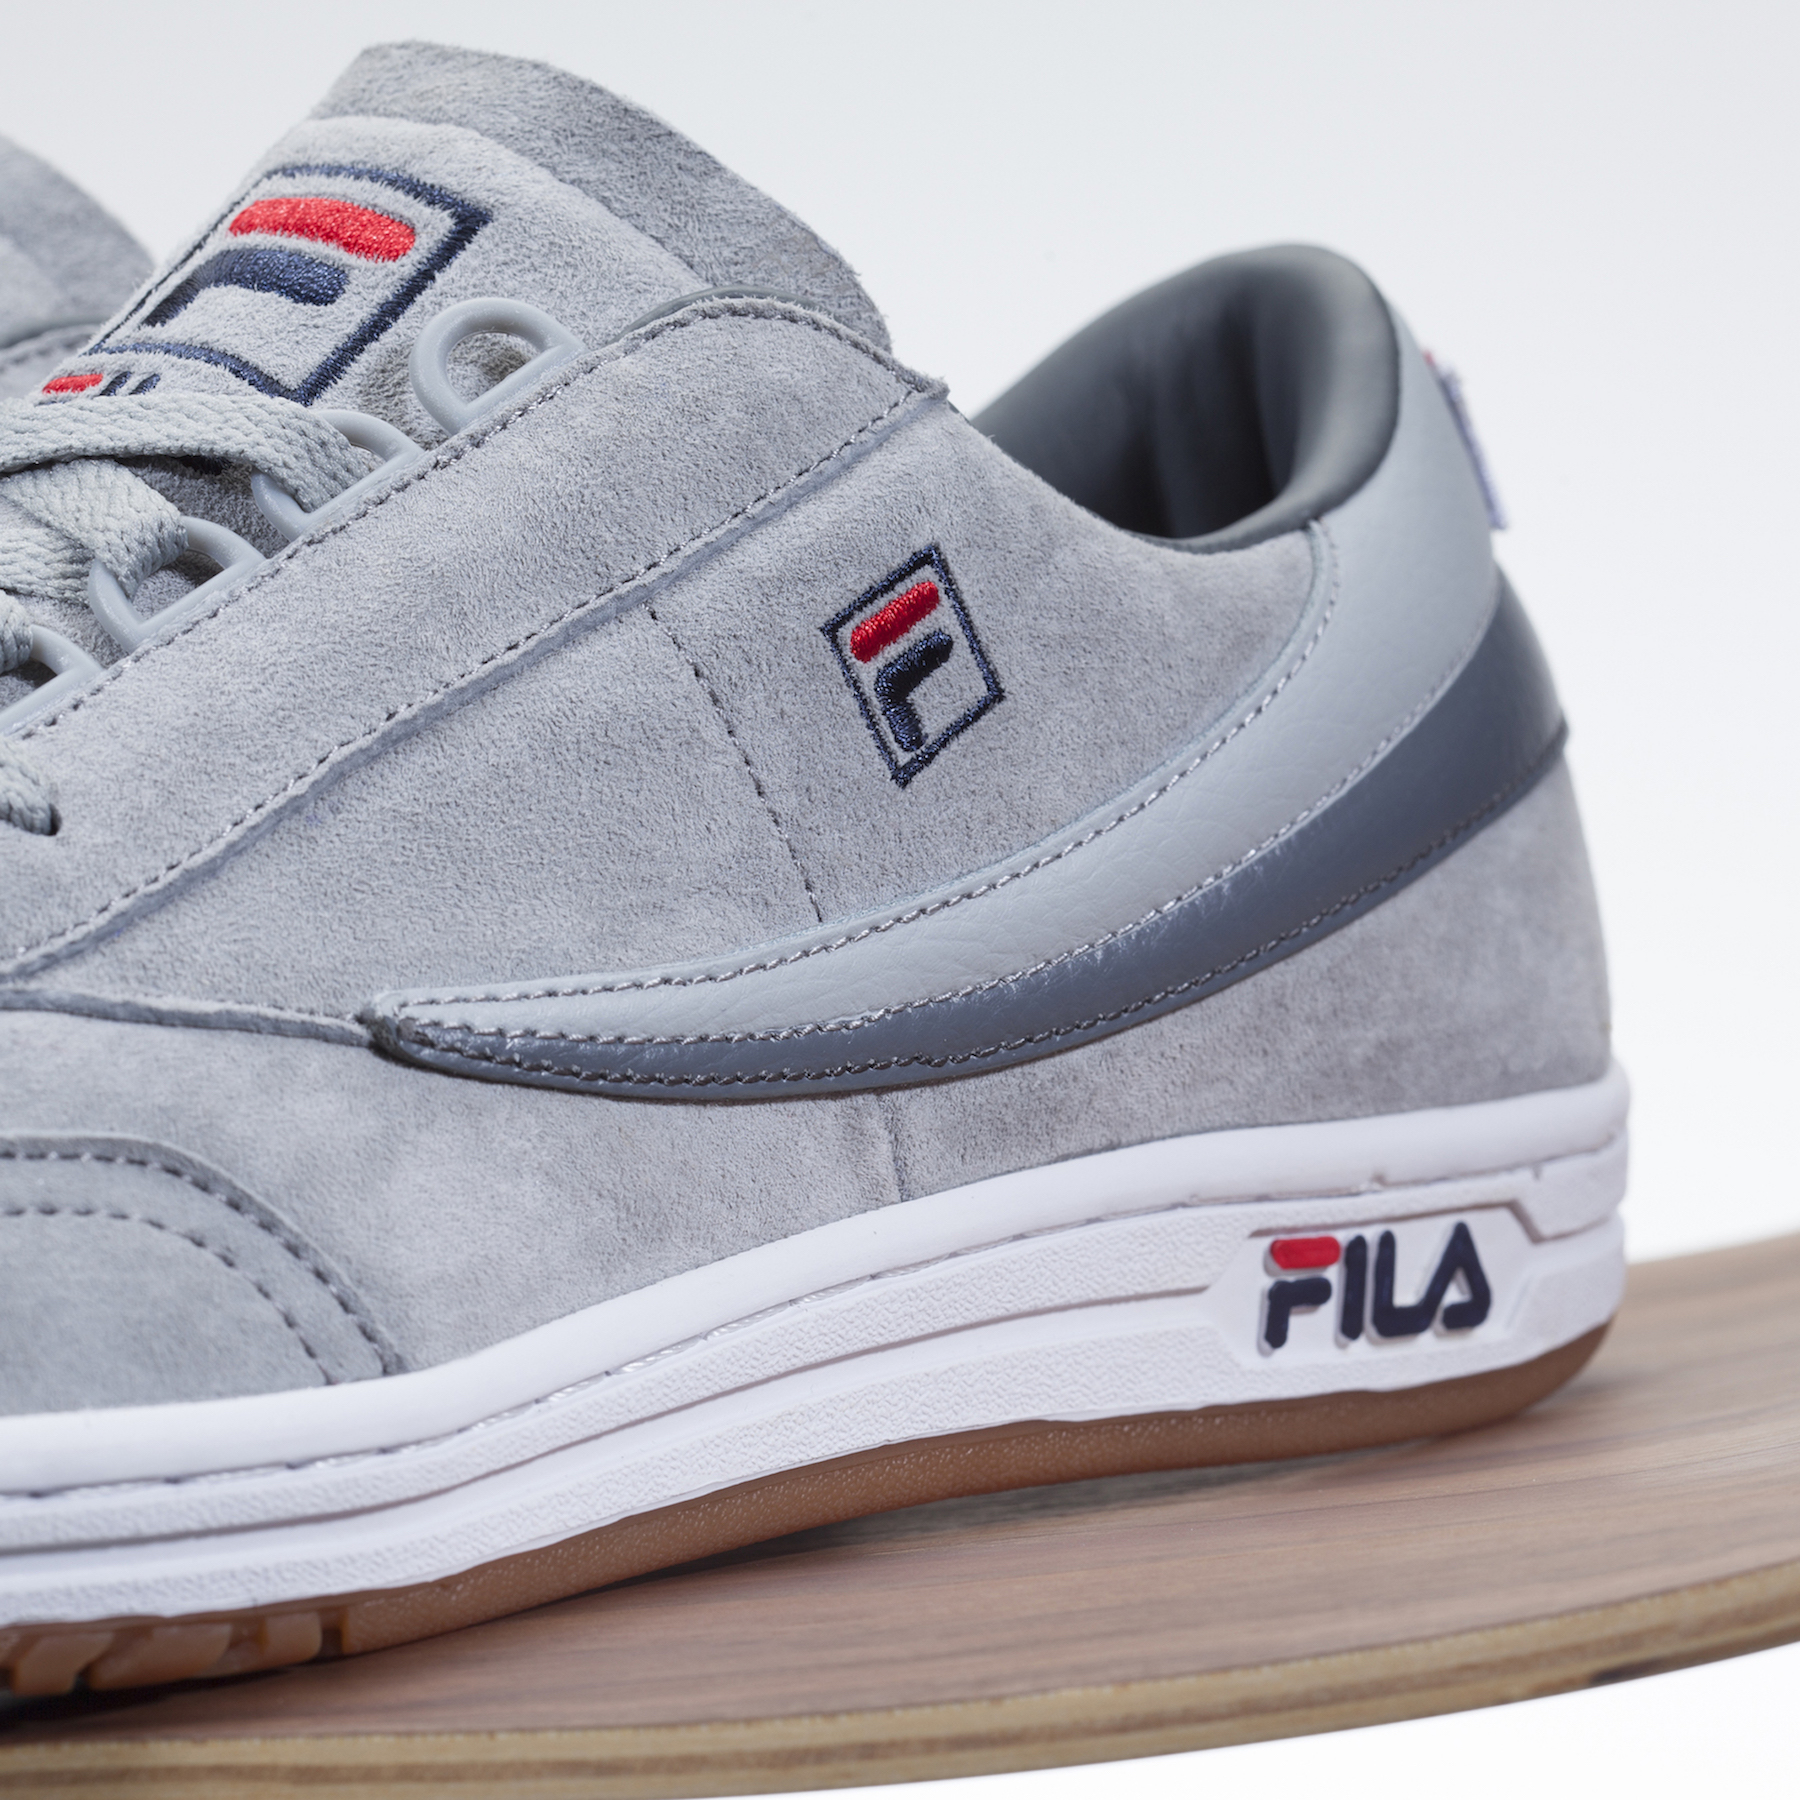 fila original tennis concrete gum pack 3